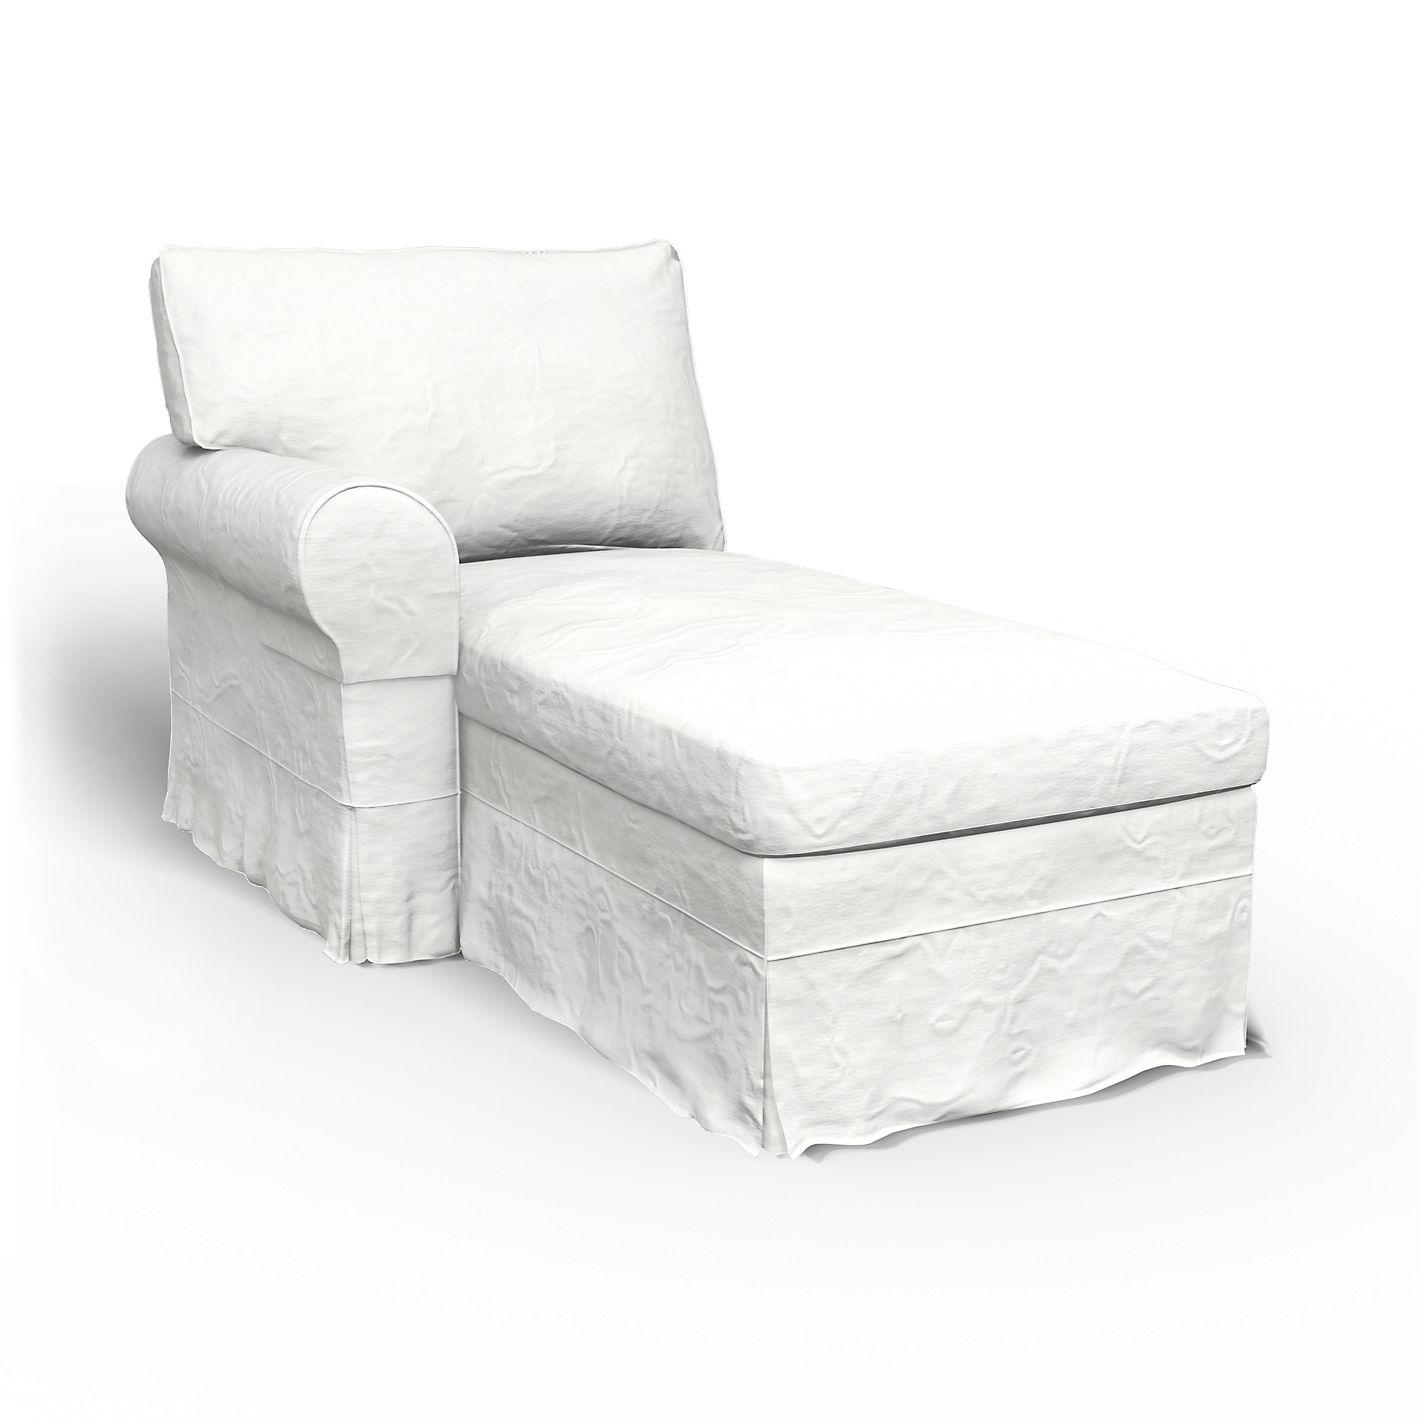 Decor: Exciting Interior Lounge Chair Design With White Chaise Regarding Slipcovered Chaises (View 13 of 20)